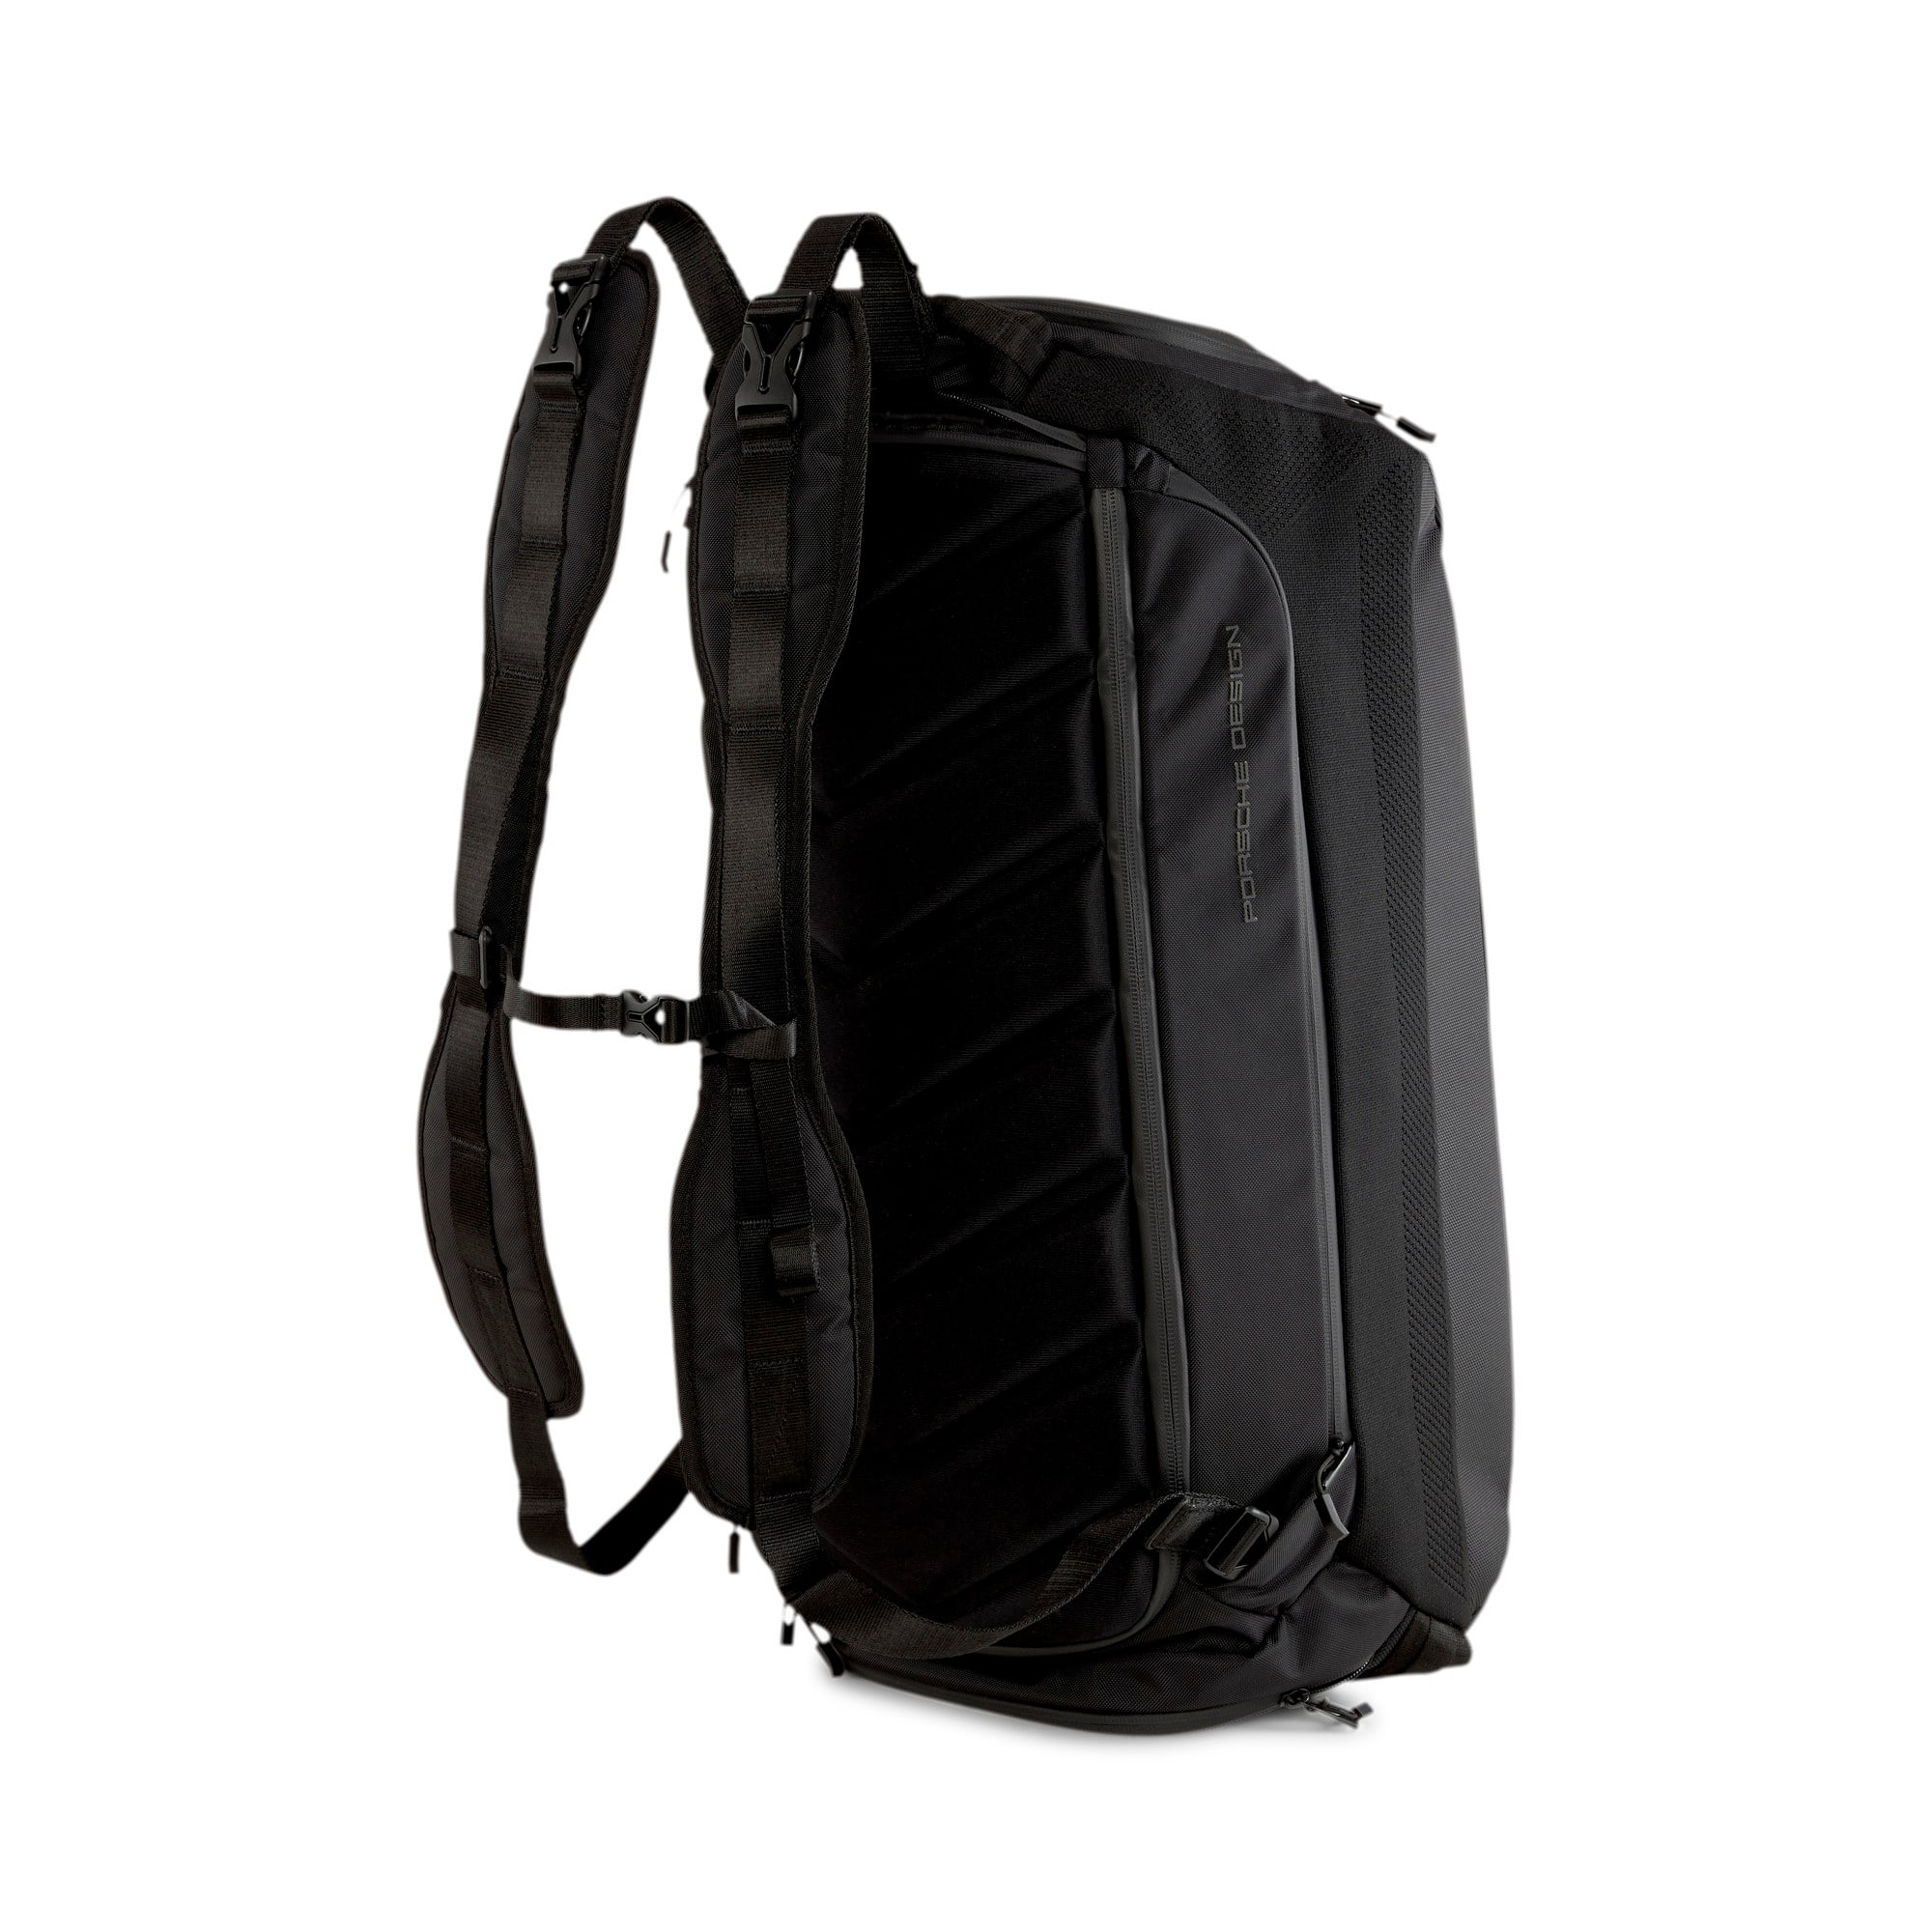 Thumbnail 3 of Porsche Design Gym Duffel Bag, Puma Black, medium